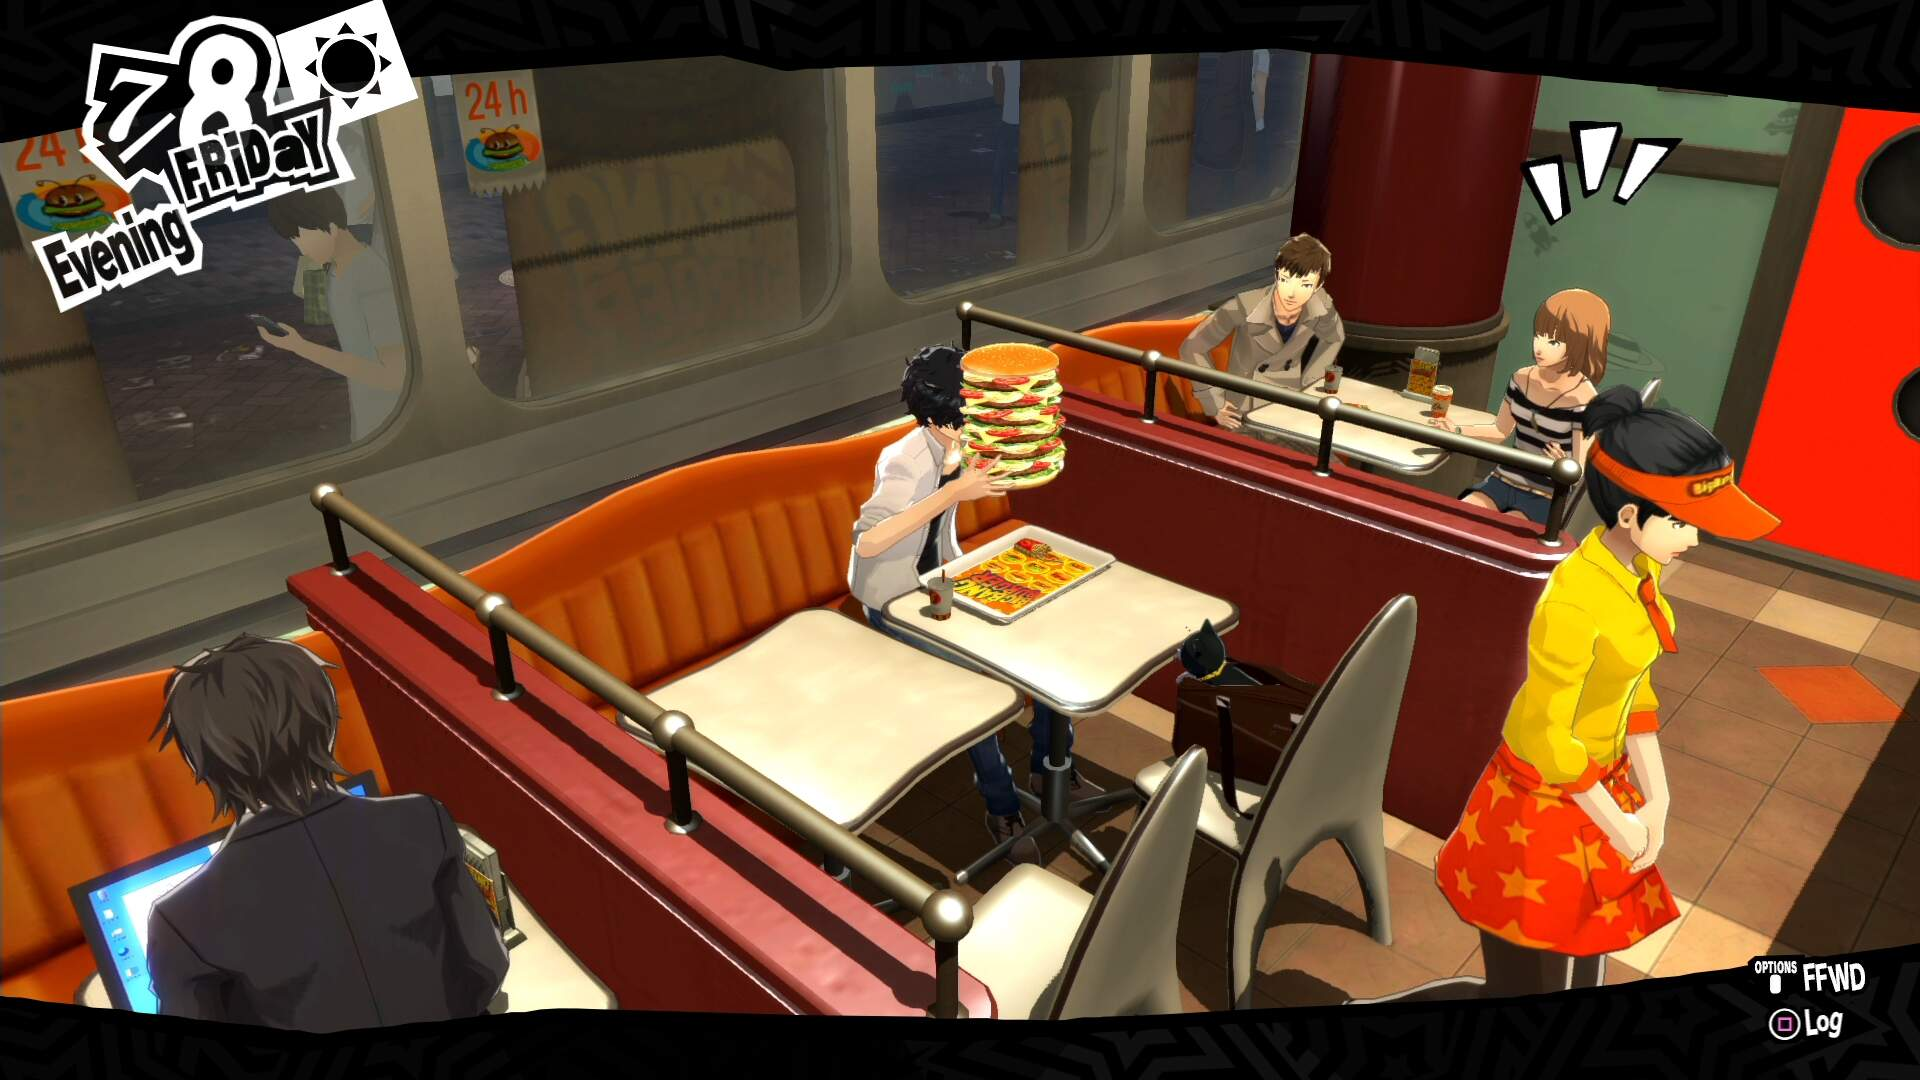 Atlus Apologizes, Slightly Changes Persona 5 Streaming Restrictions